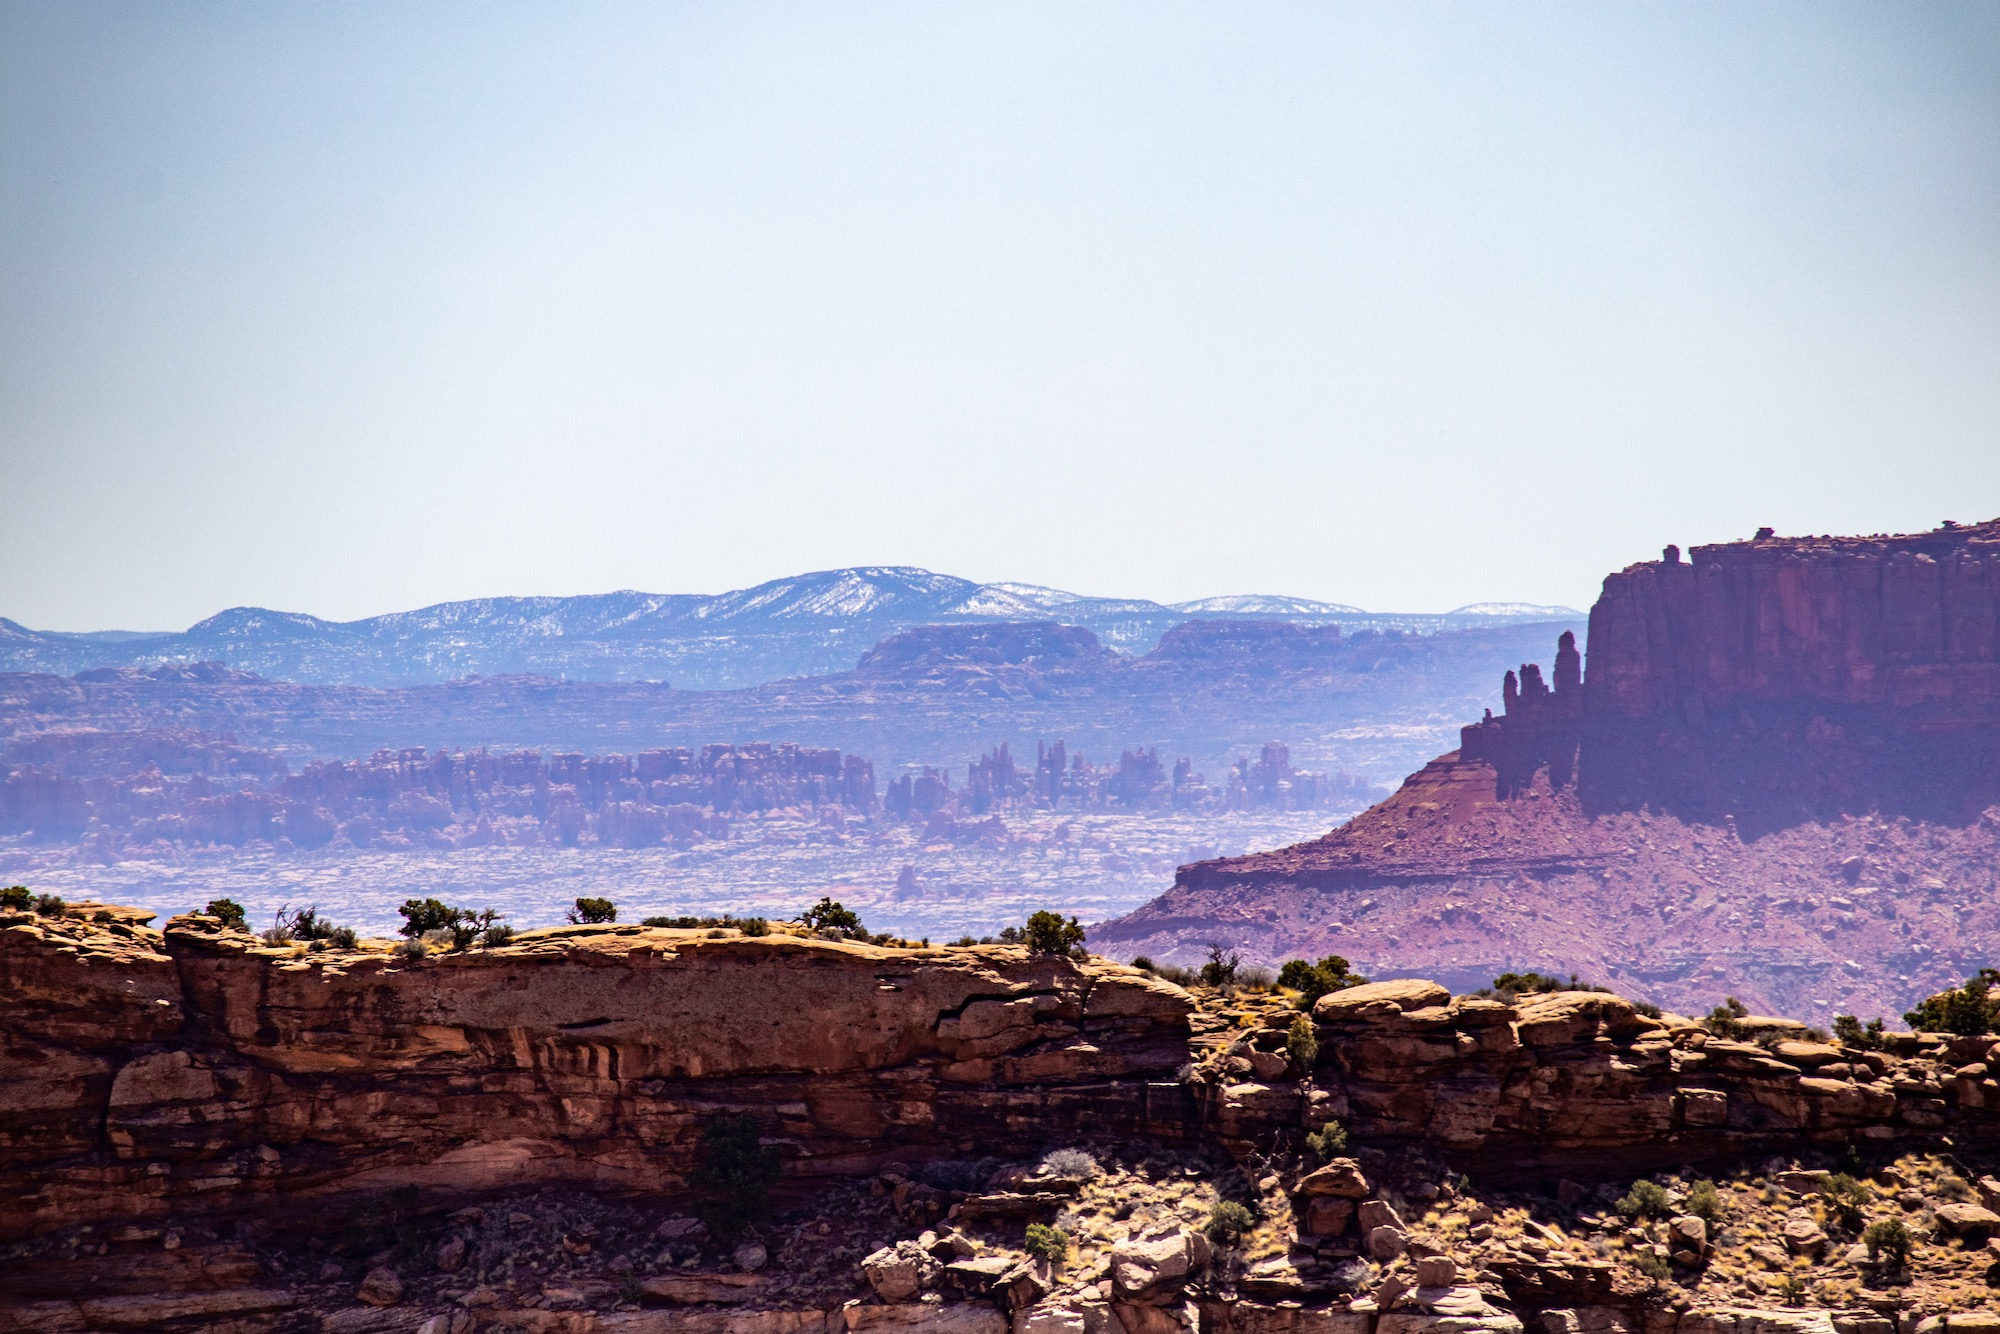 The Needles District of Canyonlands is visible in the distance here (close up views coming up in the gallery).